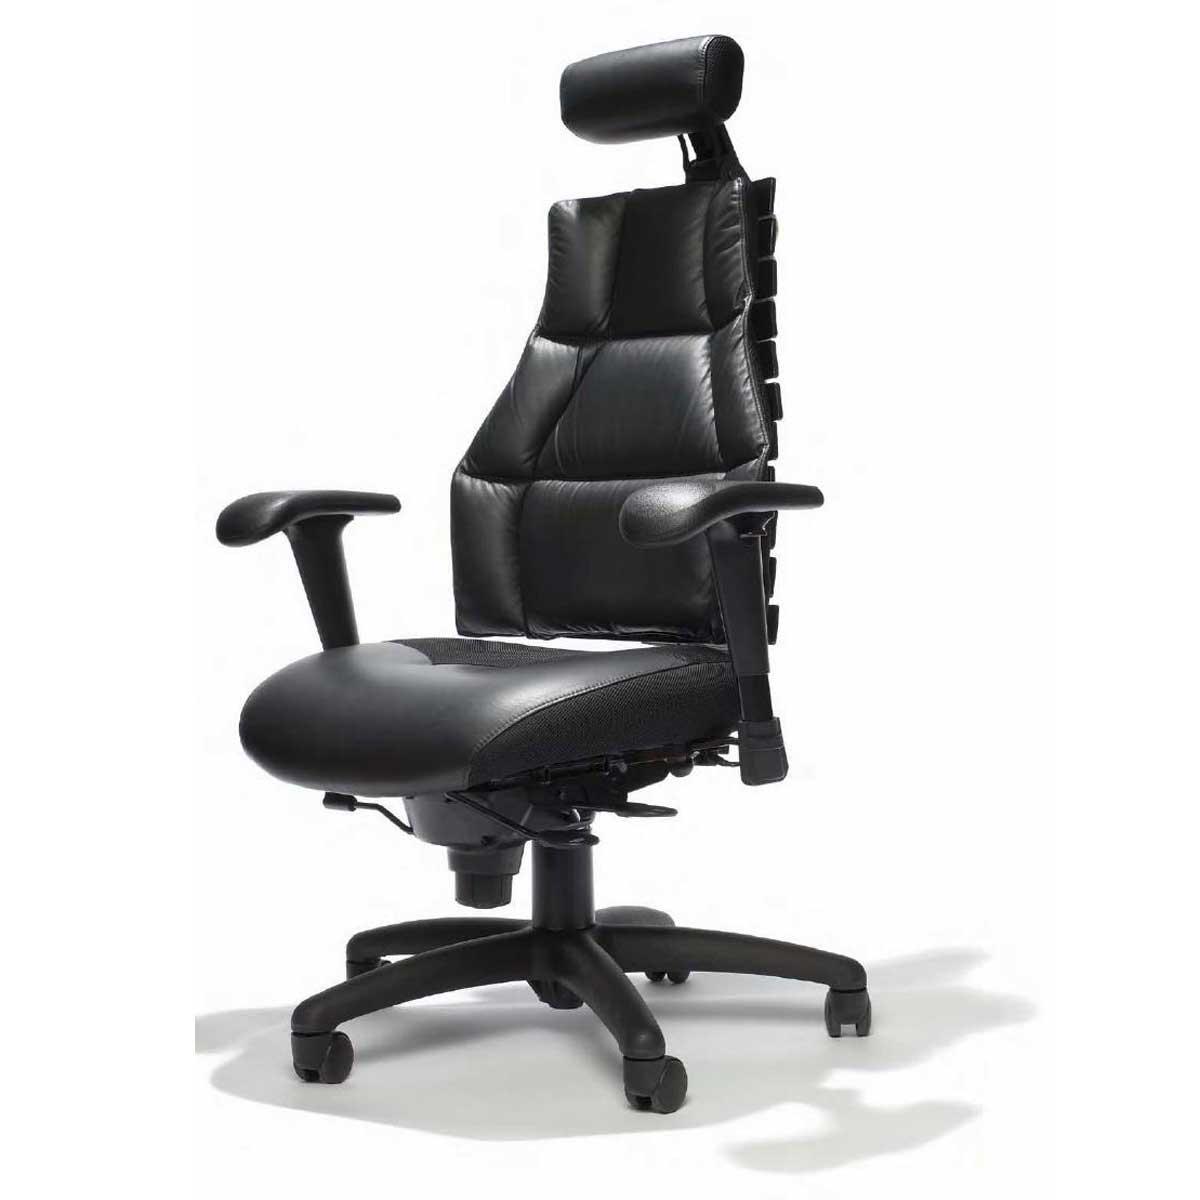 High Back Desk Chair Expensive Office Chair For Employees